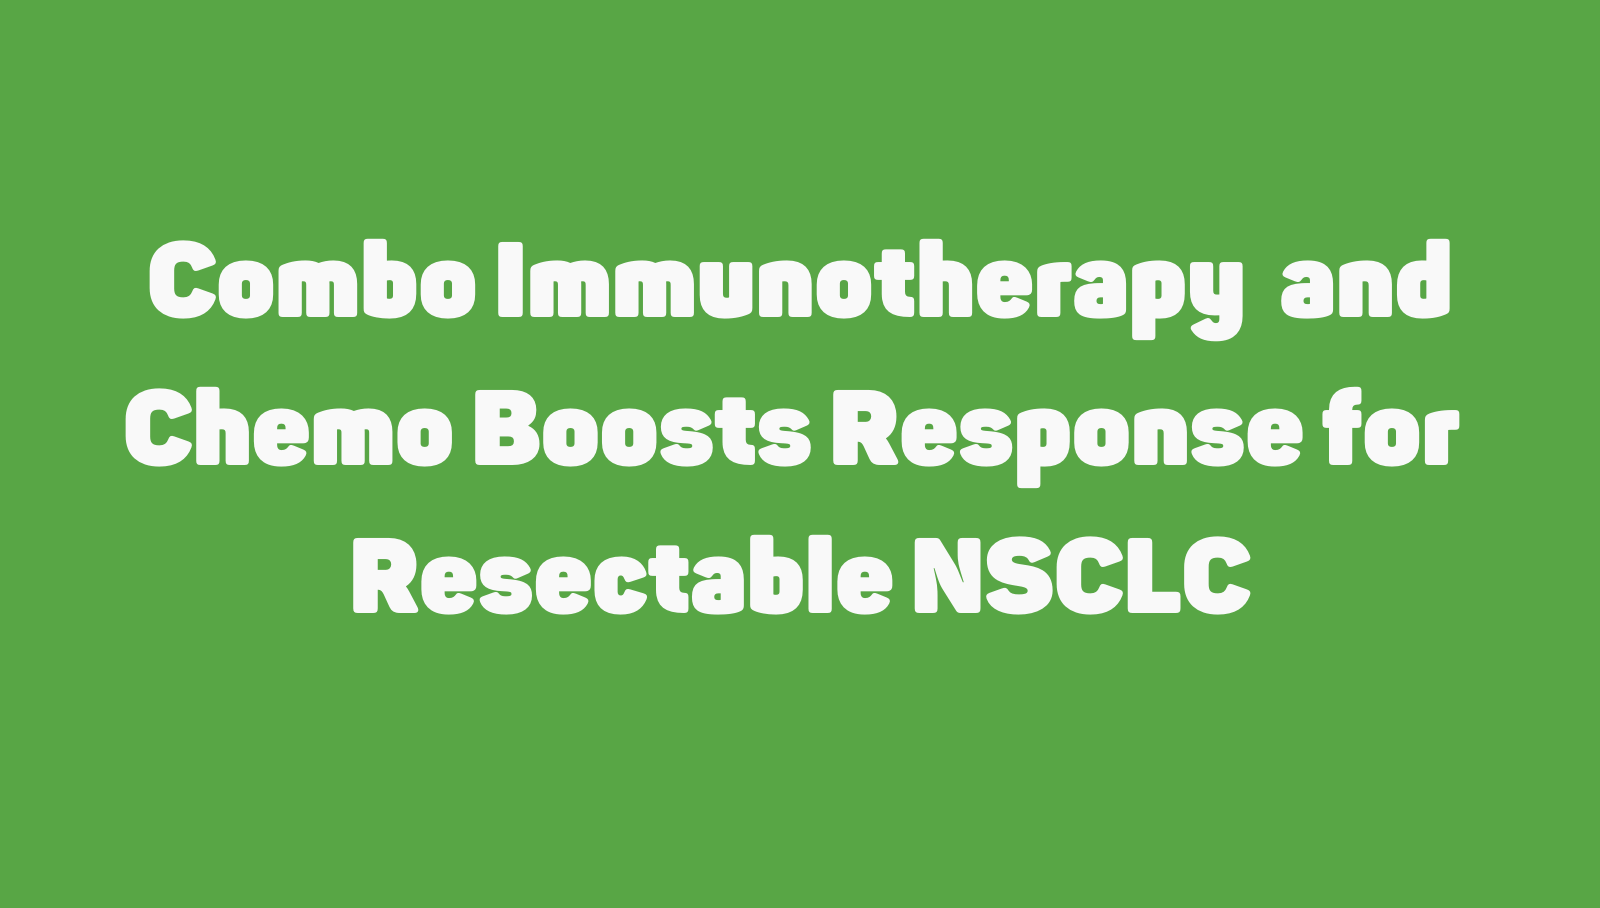 Immunotherapy + Chemo Boosts Response in Resectable NSCLC